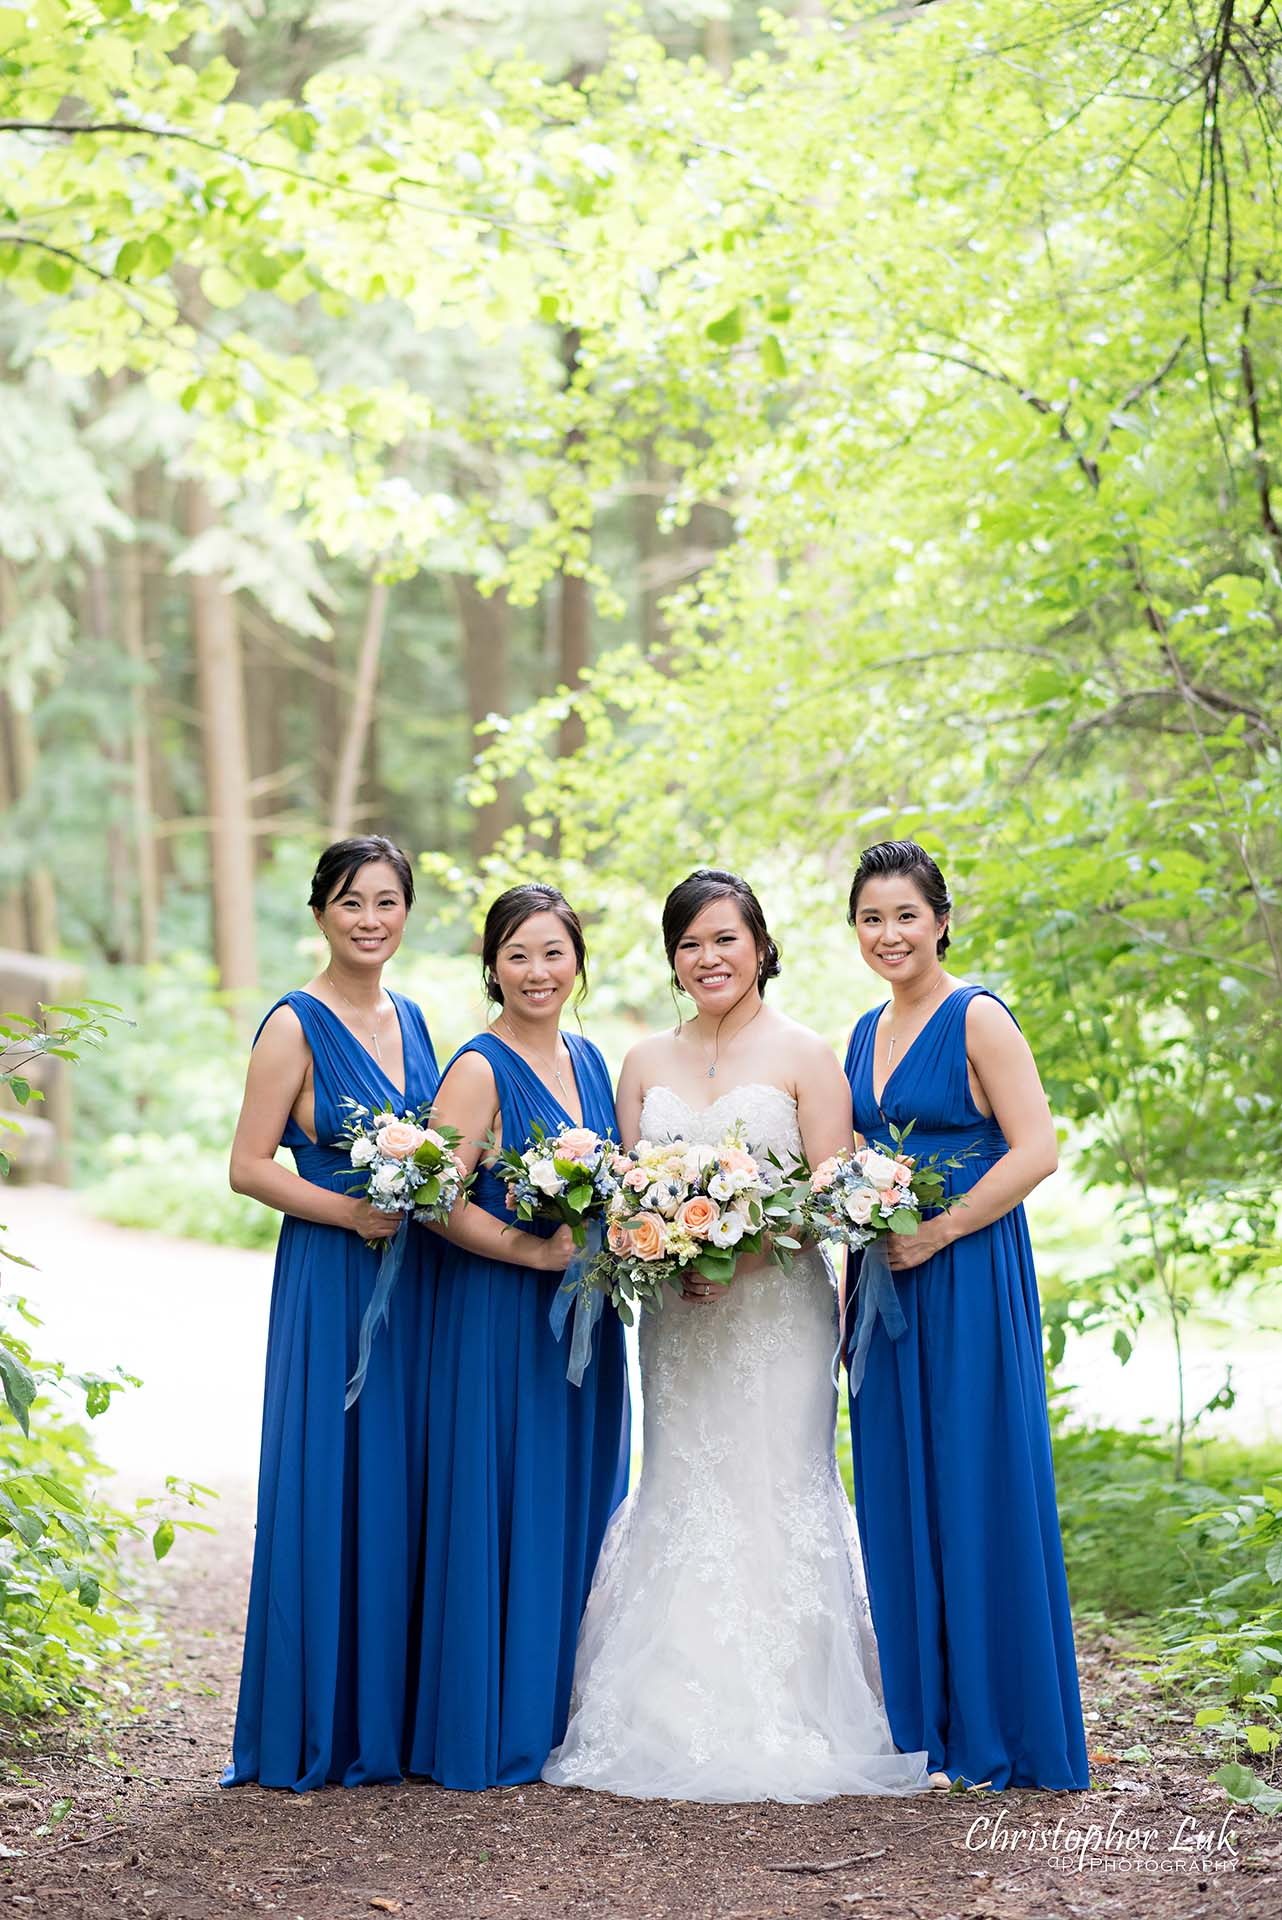 Christopher Luk Toronto Christian Community Church Kleinburg McMichael Art Gallery Presidente Banquet Hall Vaughan Wedding Photographer Bride Bridal Party Bridesmaids Matron Maid of Honour Natural Candid Photojournalistic Forest Woods Wooded Area Tall Trees Blue Dresses Smile